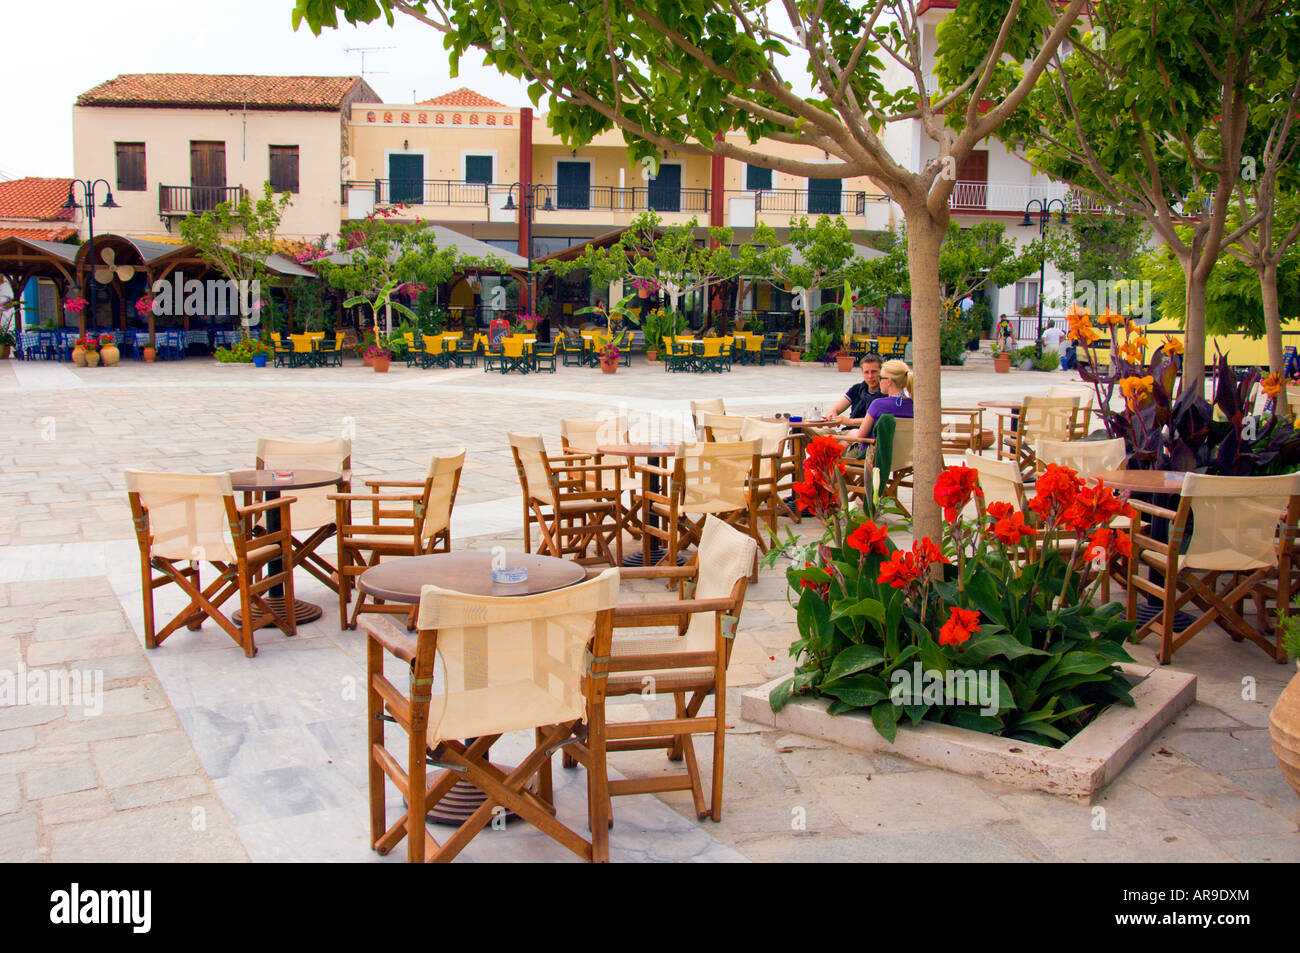 Outdoor restaurants at the town square in Methoni Messinia Peloponesse Greece - Stock Image